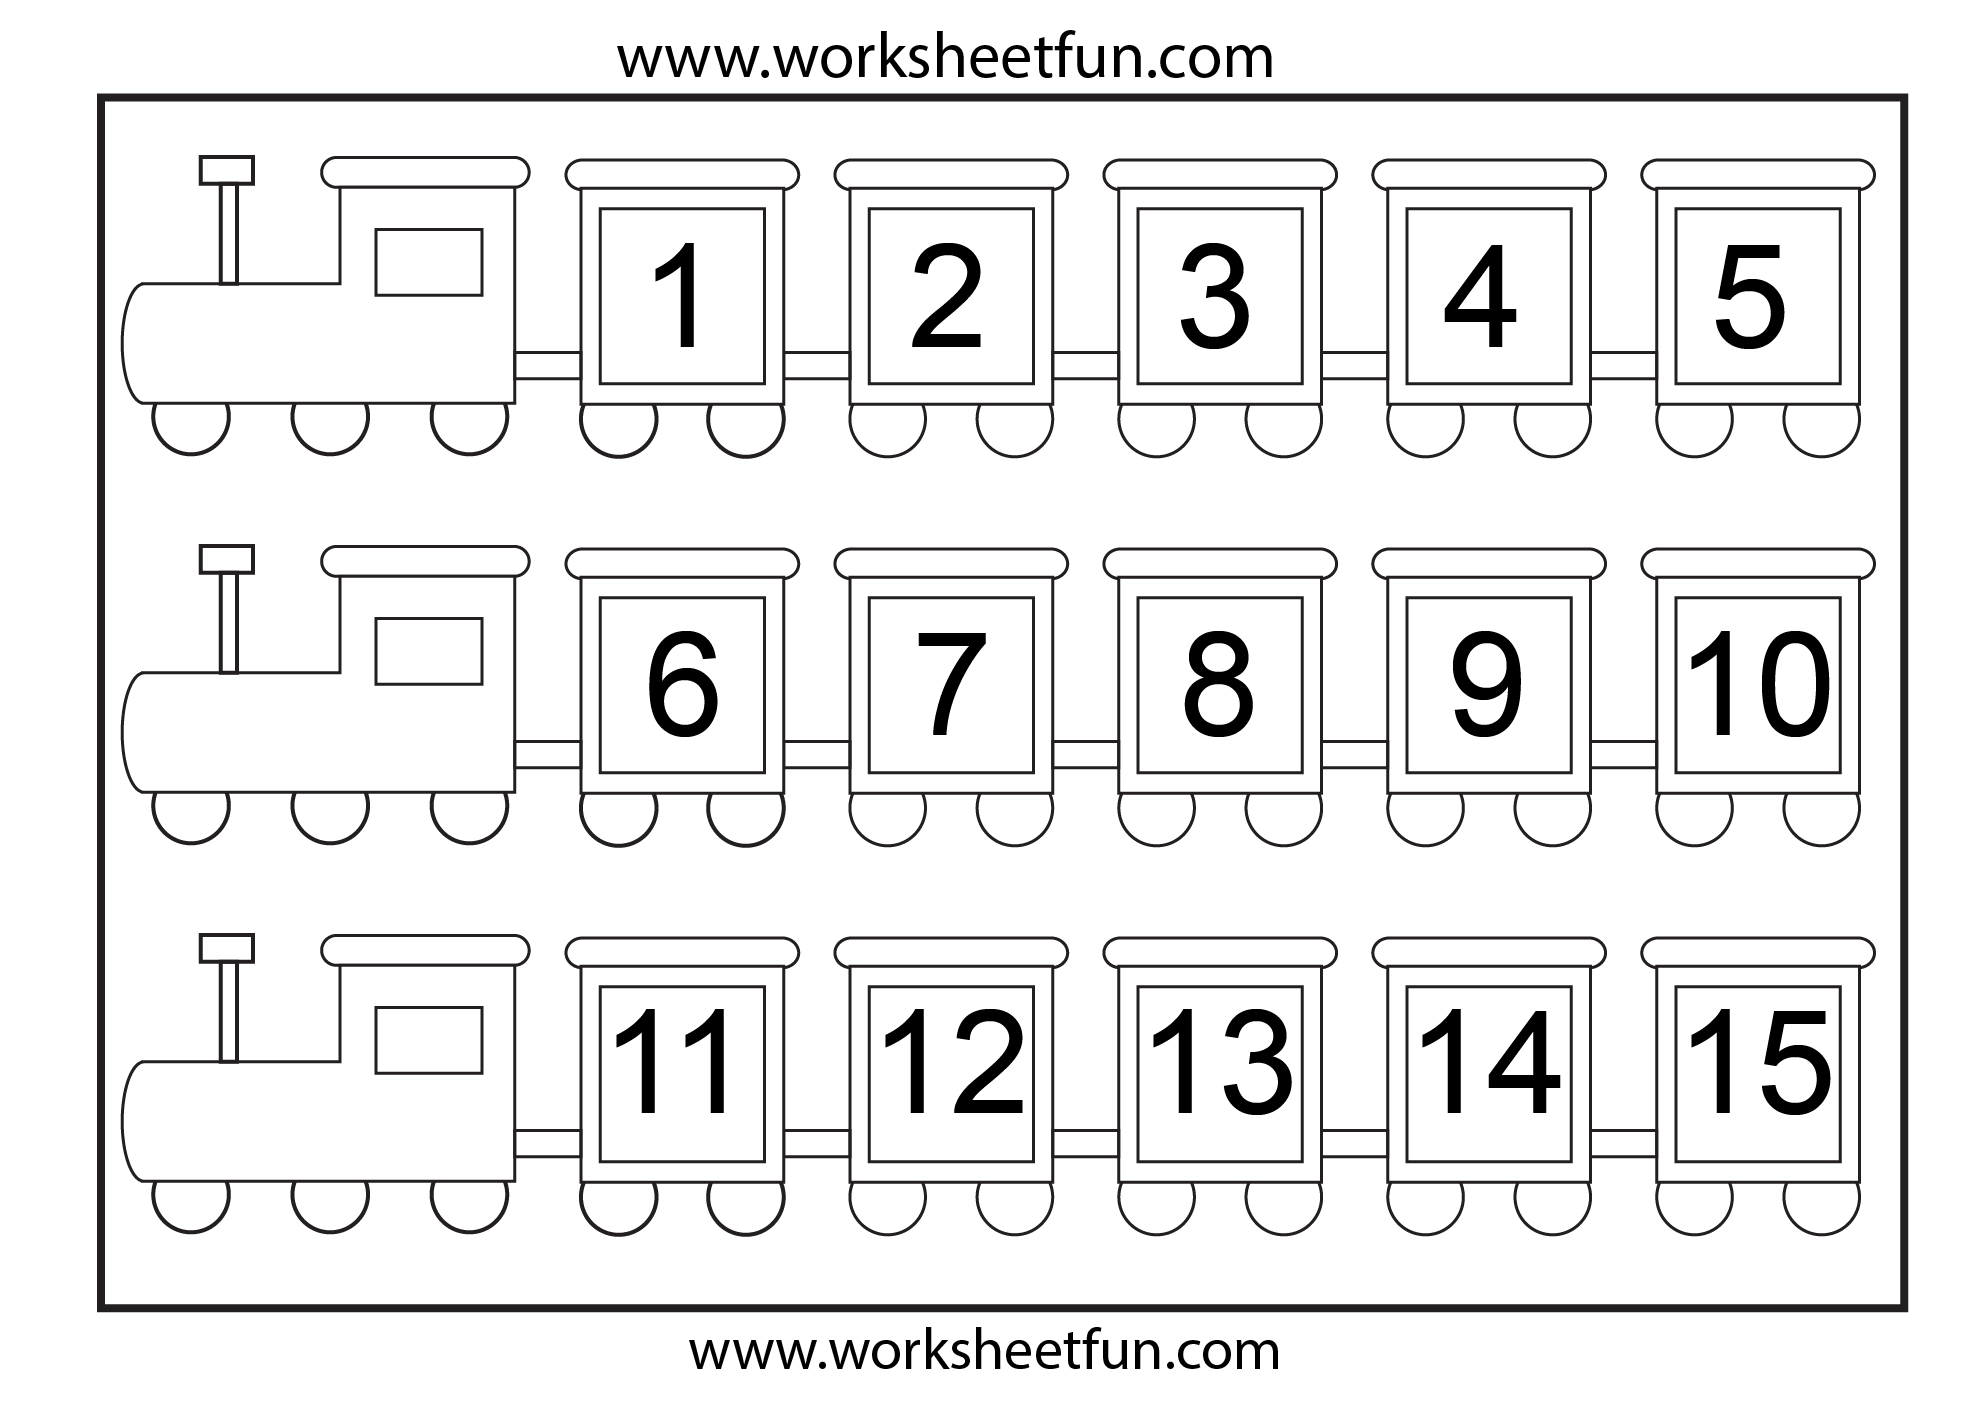 Printables Free Counting Worksheets 1-20 kindergarten number worksheets 1 20 chartskindergarten math worksheet practice sheets for k5 worksheets